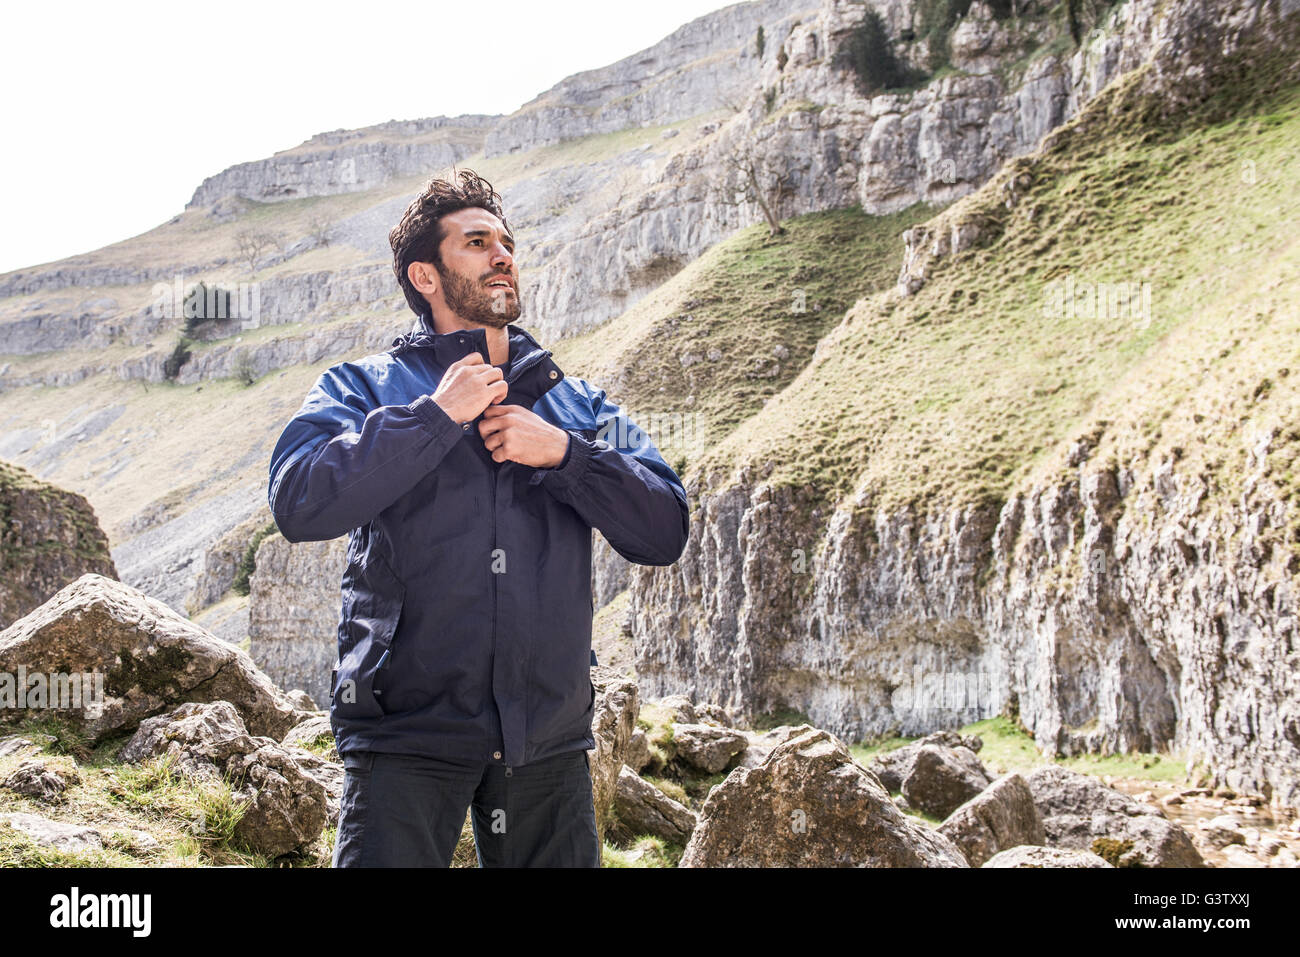 A mountaineer standing in rugged terrain. - Stock Image